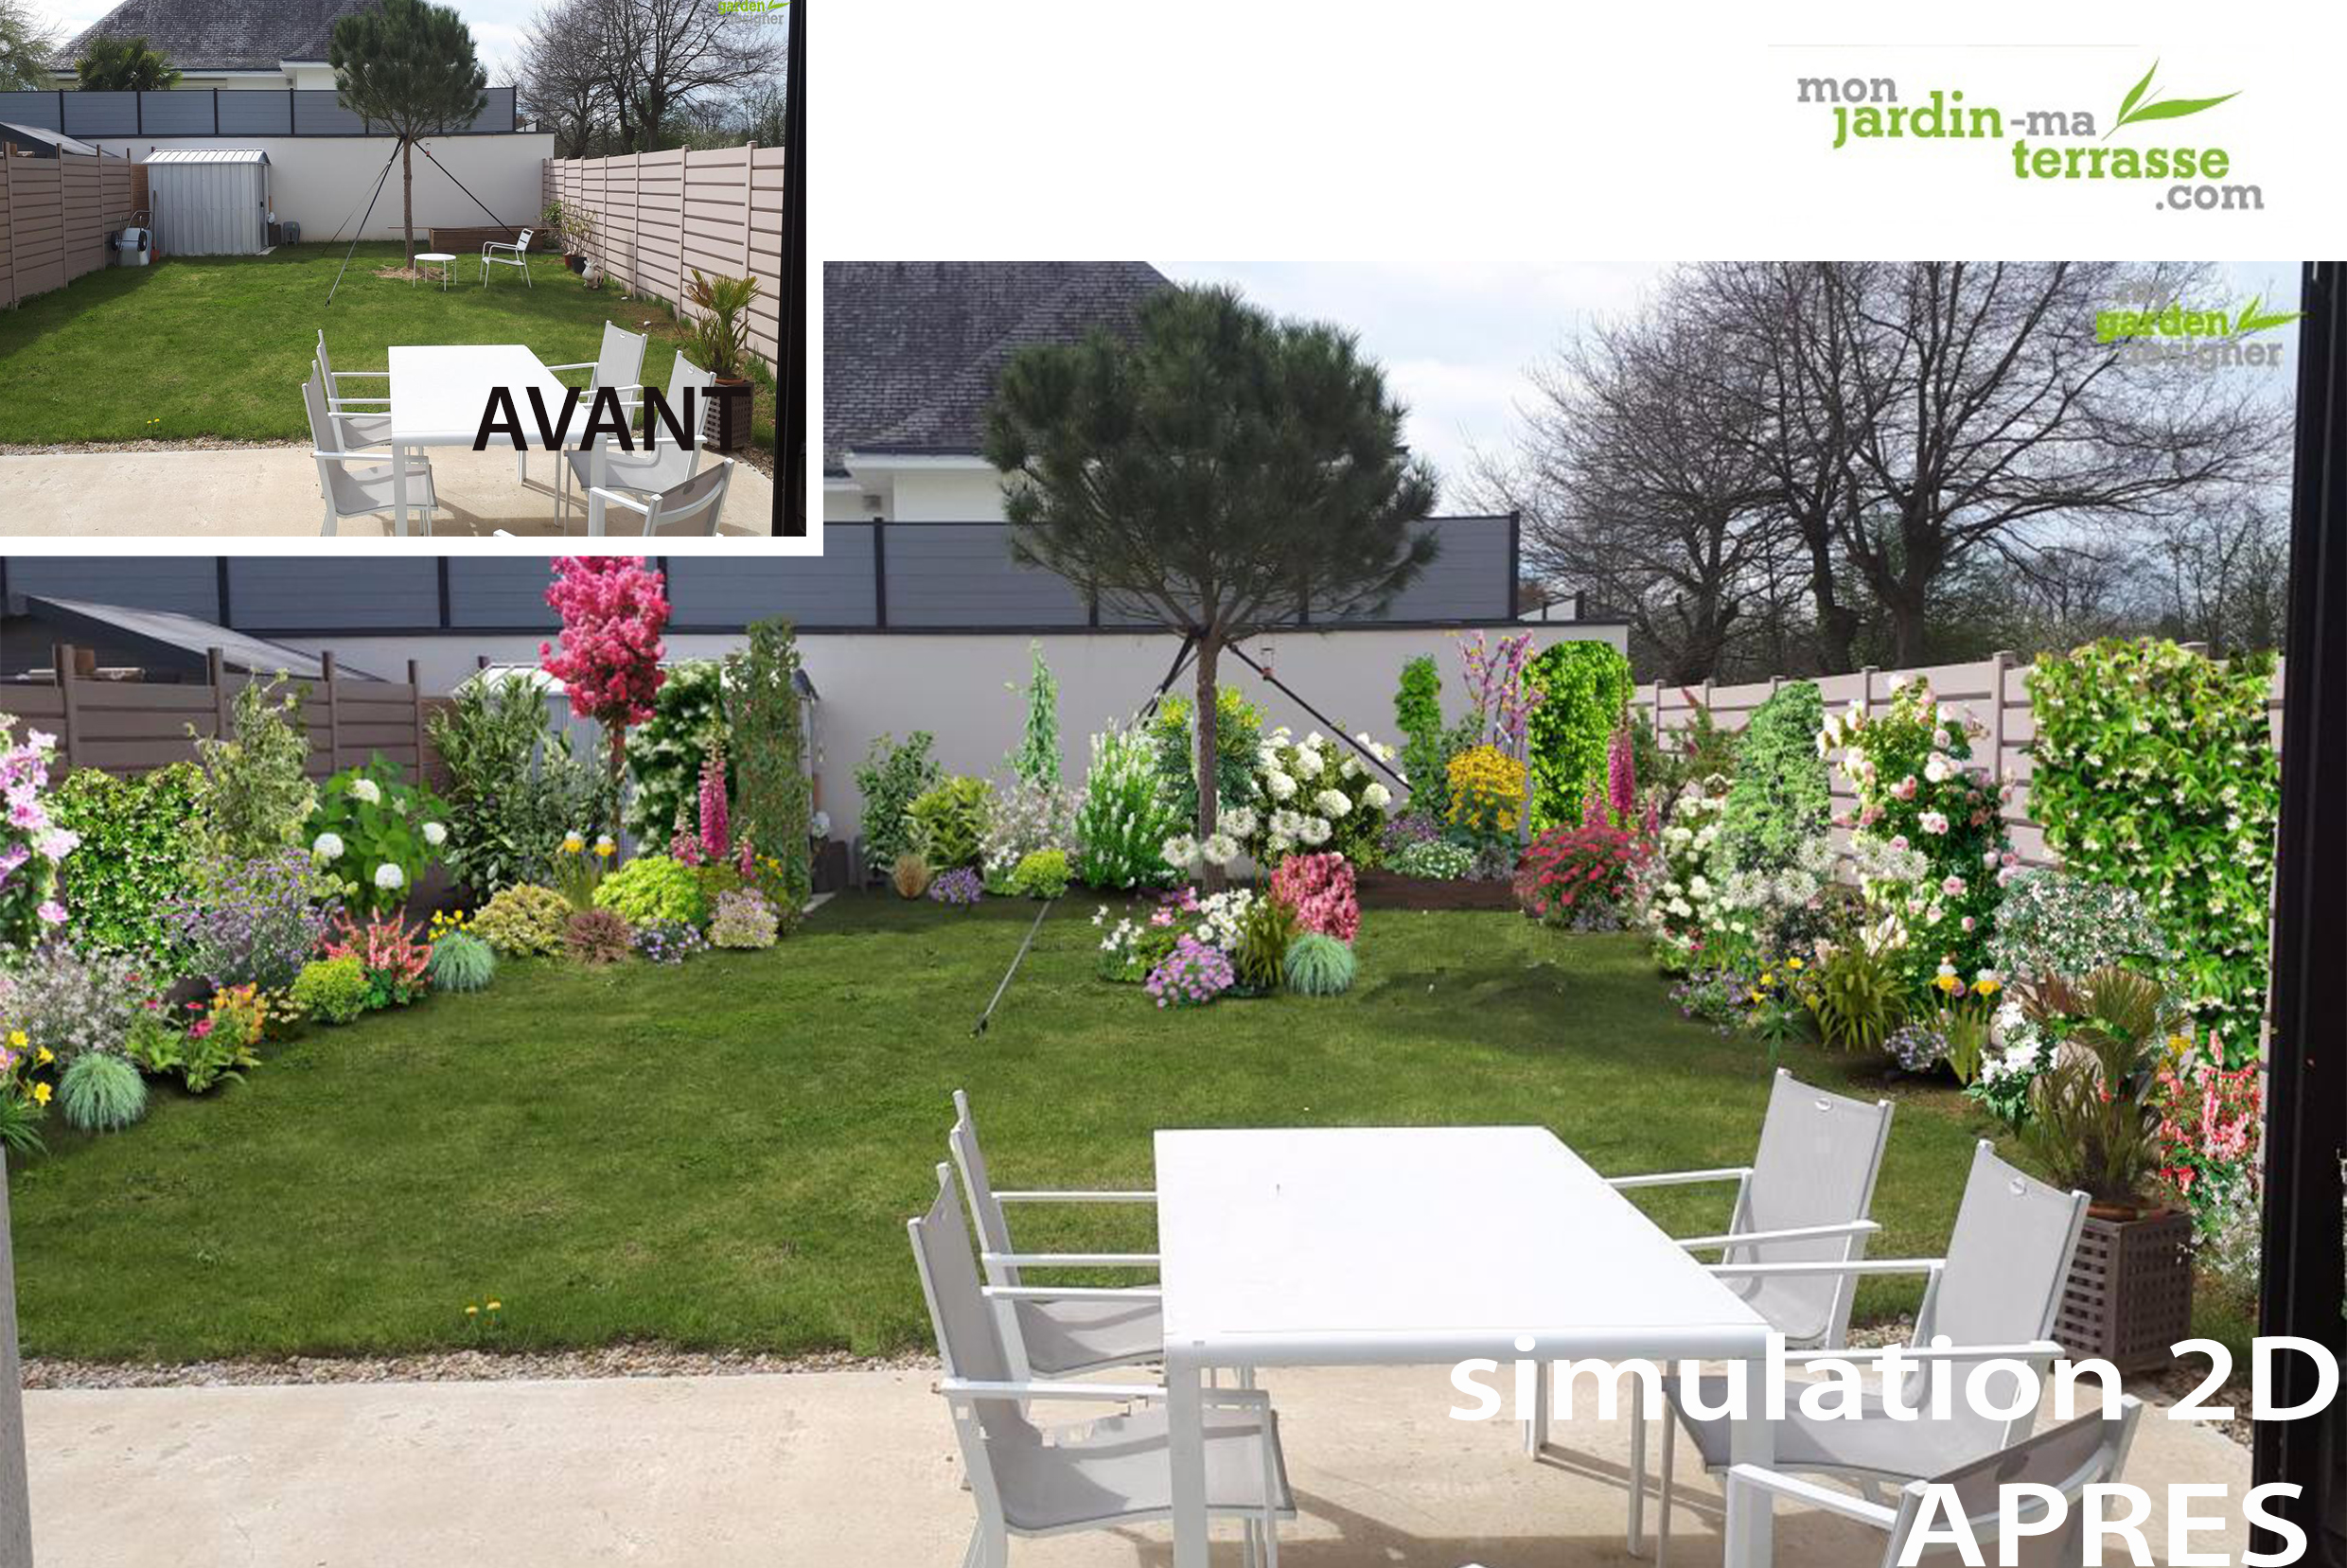 Comment am nager un petit jardin rectangulaire monjardin for Amenagement jardin fleuri